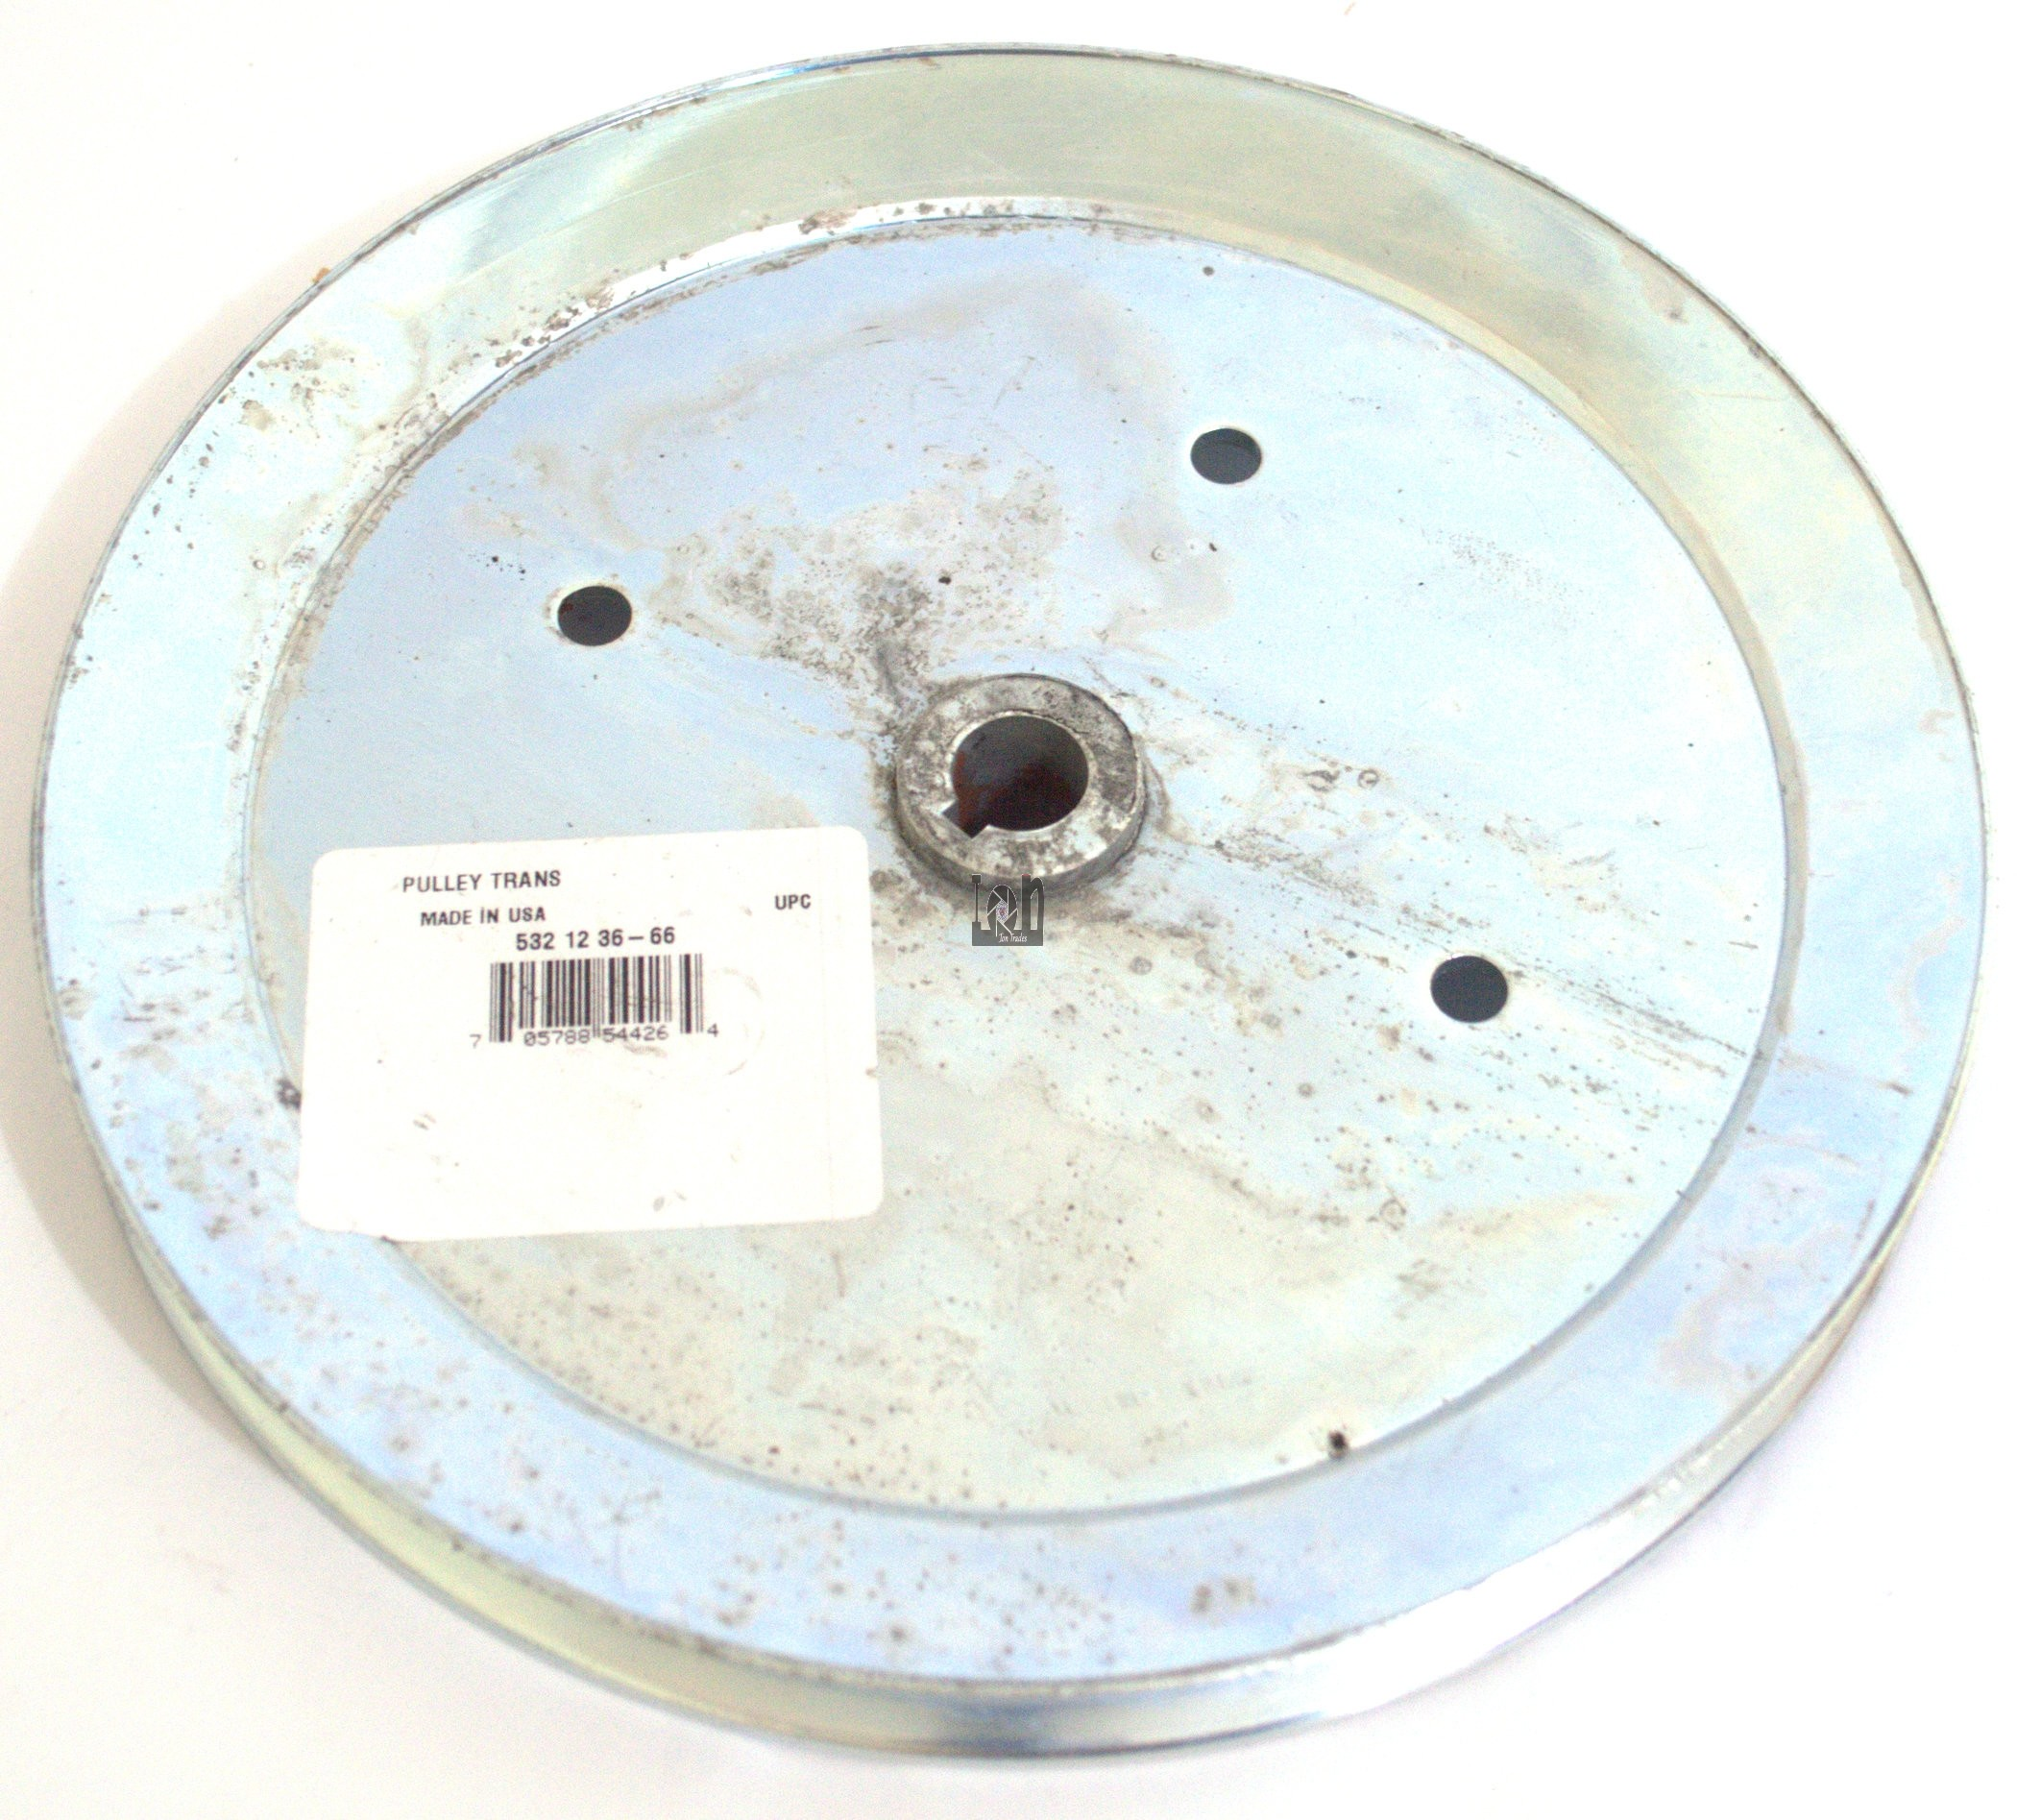 "Husqvarna Transaxle / Drive Pulley 532123666 9"" x 1 x 5/8"" Riding Mower Parts"